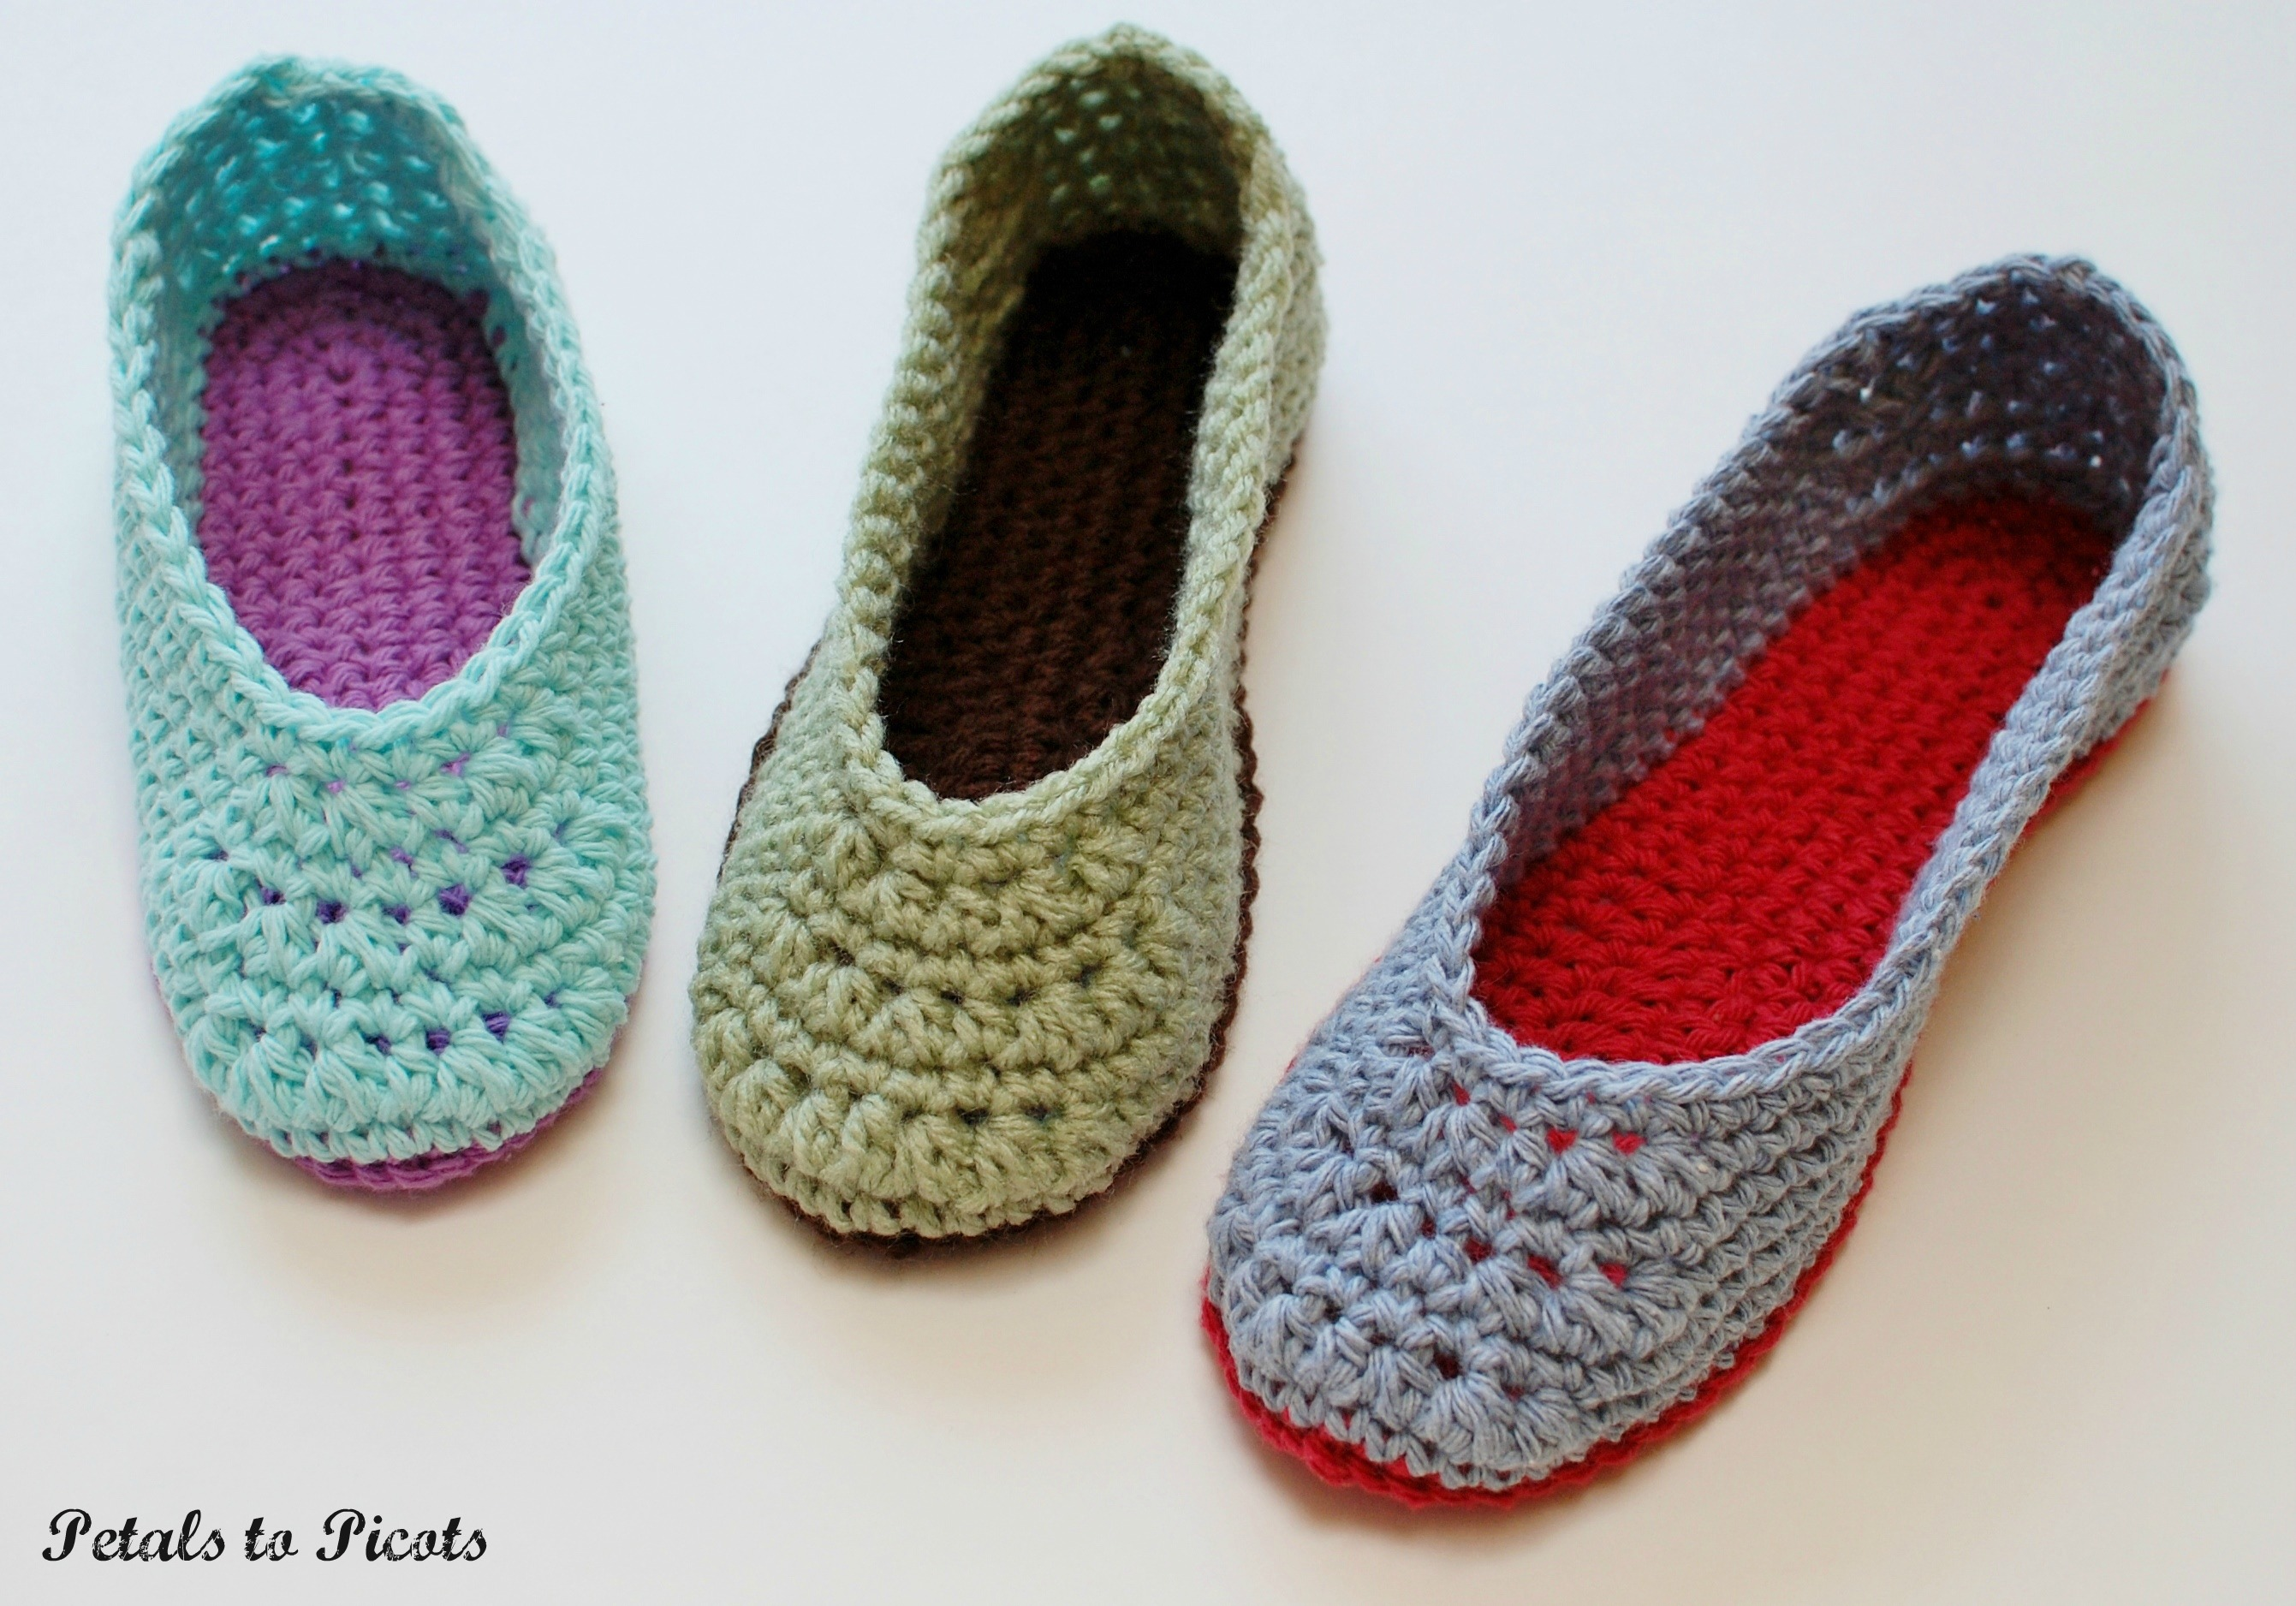 42982cdb39928 Crochet Pattern - Ladies Slippers (Women's Sizes 4/5, 6/7, 8/9, 10/11) from  Petals to Picots